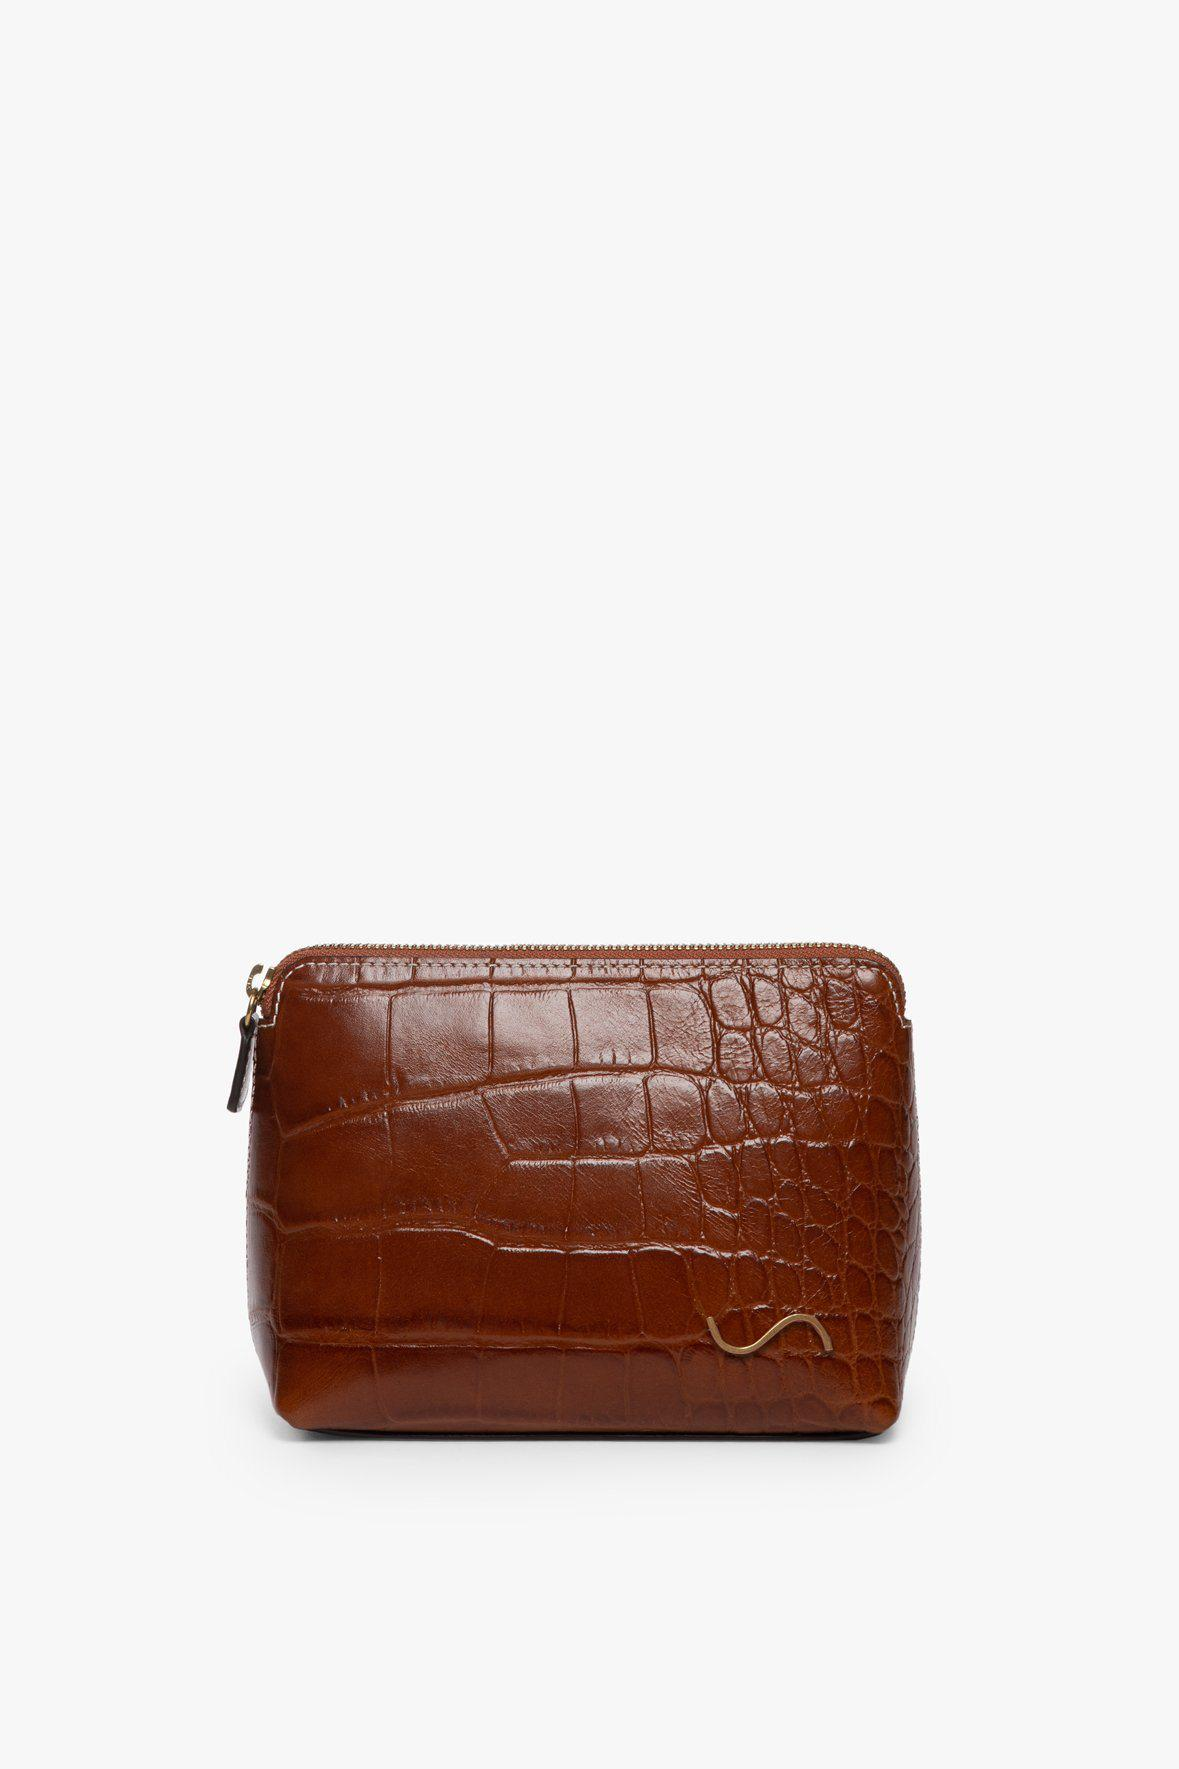 MAKEUP POUCH | SADDLE CROC EMBOSSED